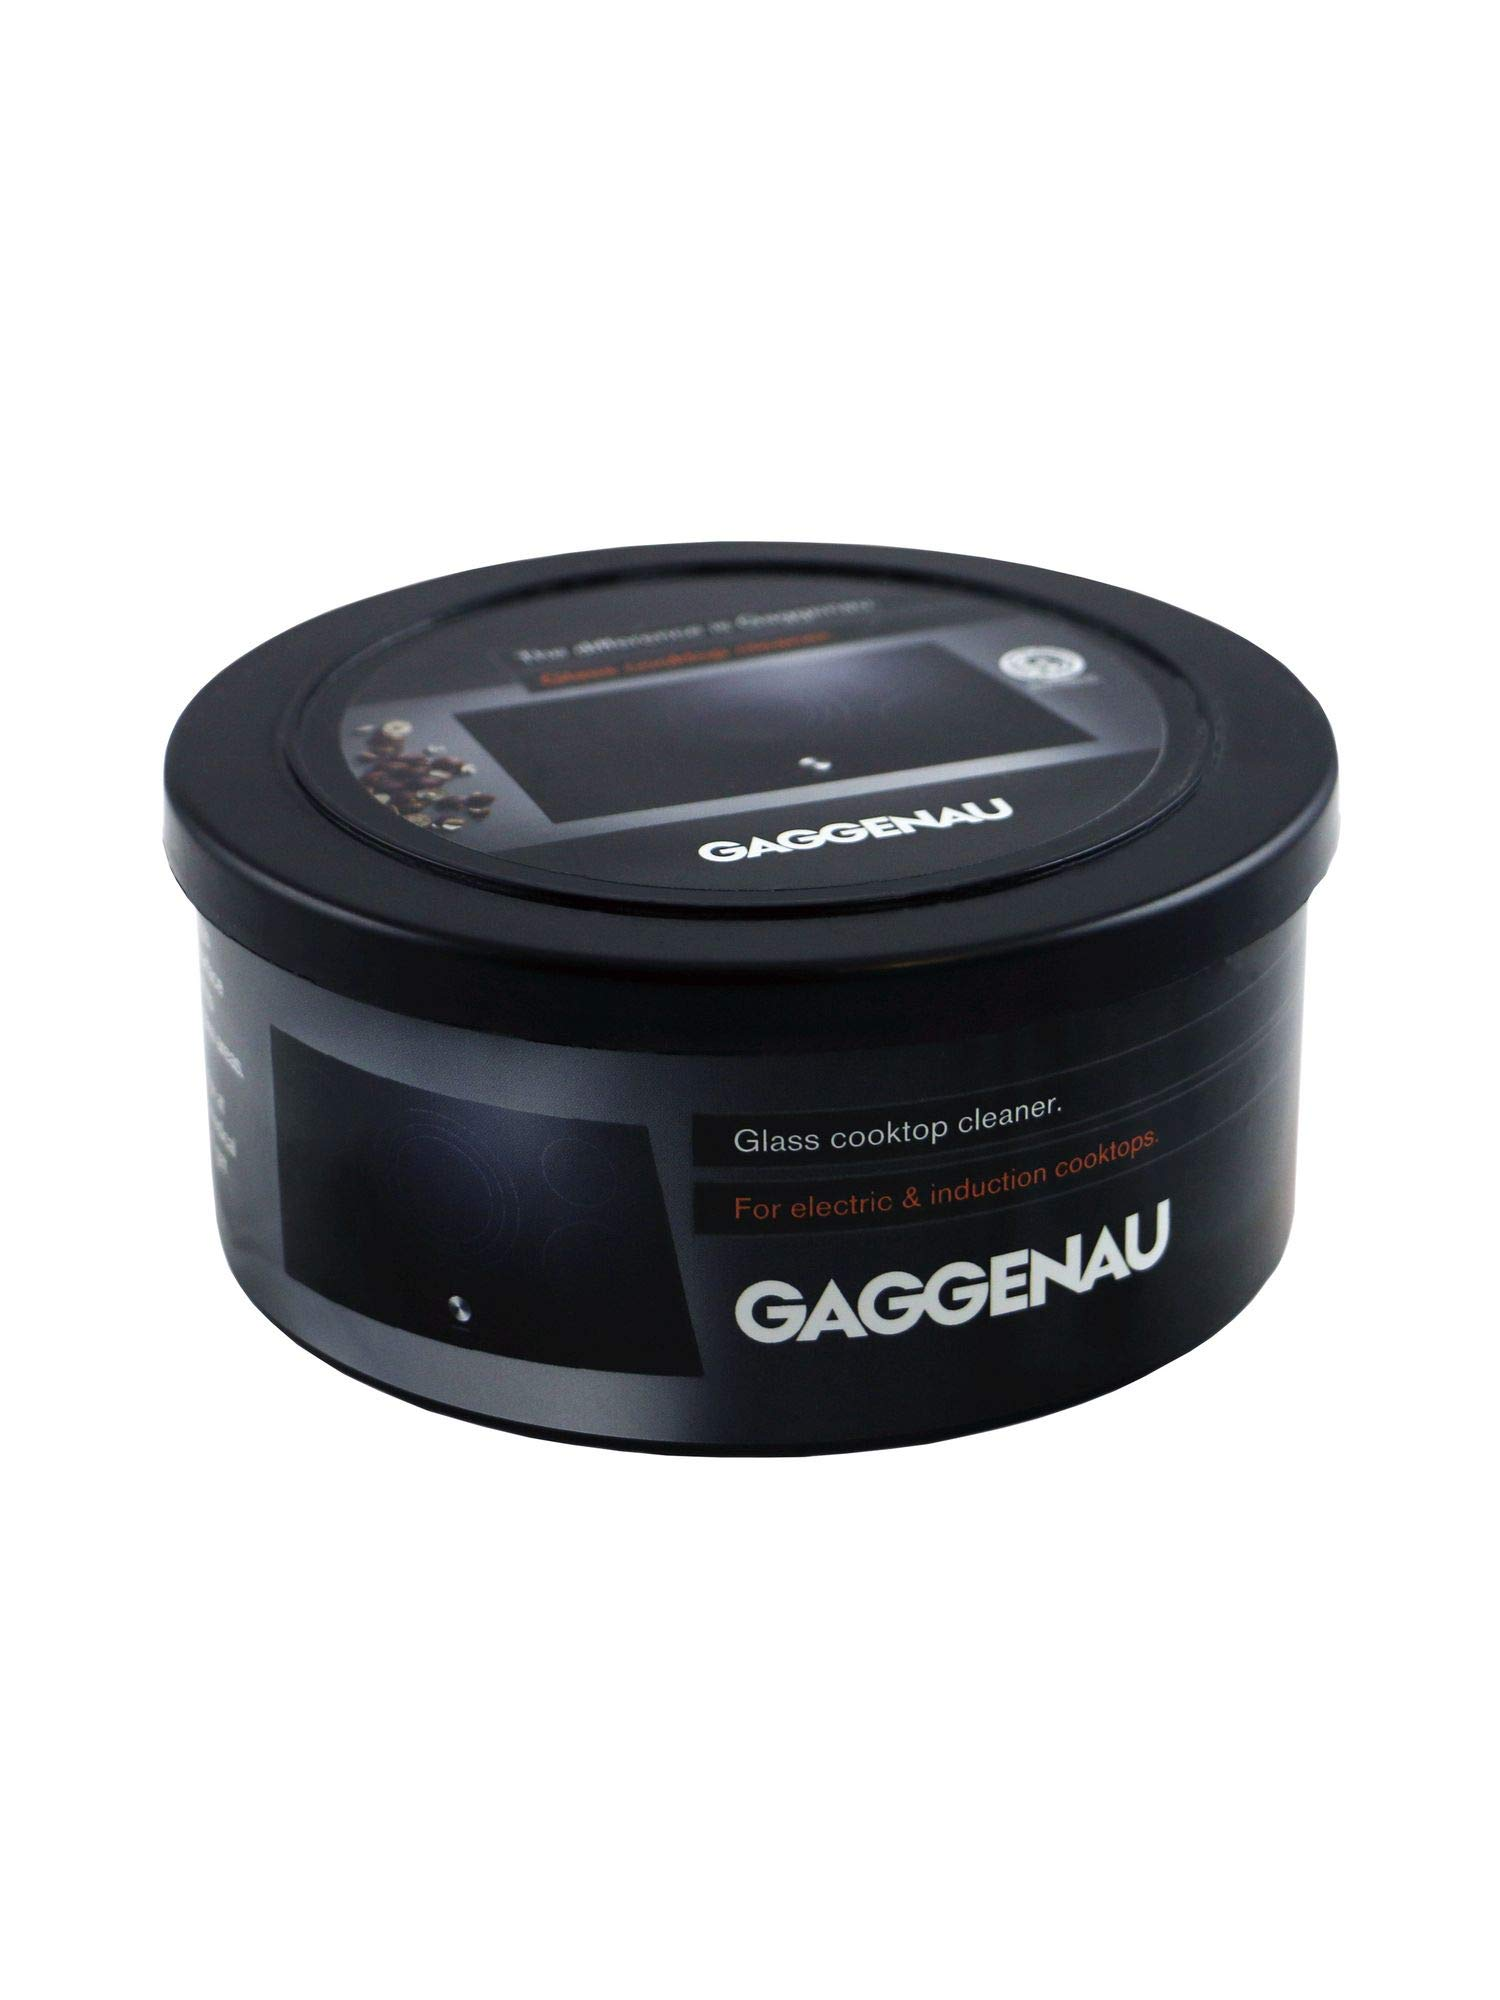 Gaggenau 12010032 Glass Cooktop Cleaner For electric & induction cooktops Set of Two 12-ounce tubs by Gaggenau